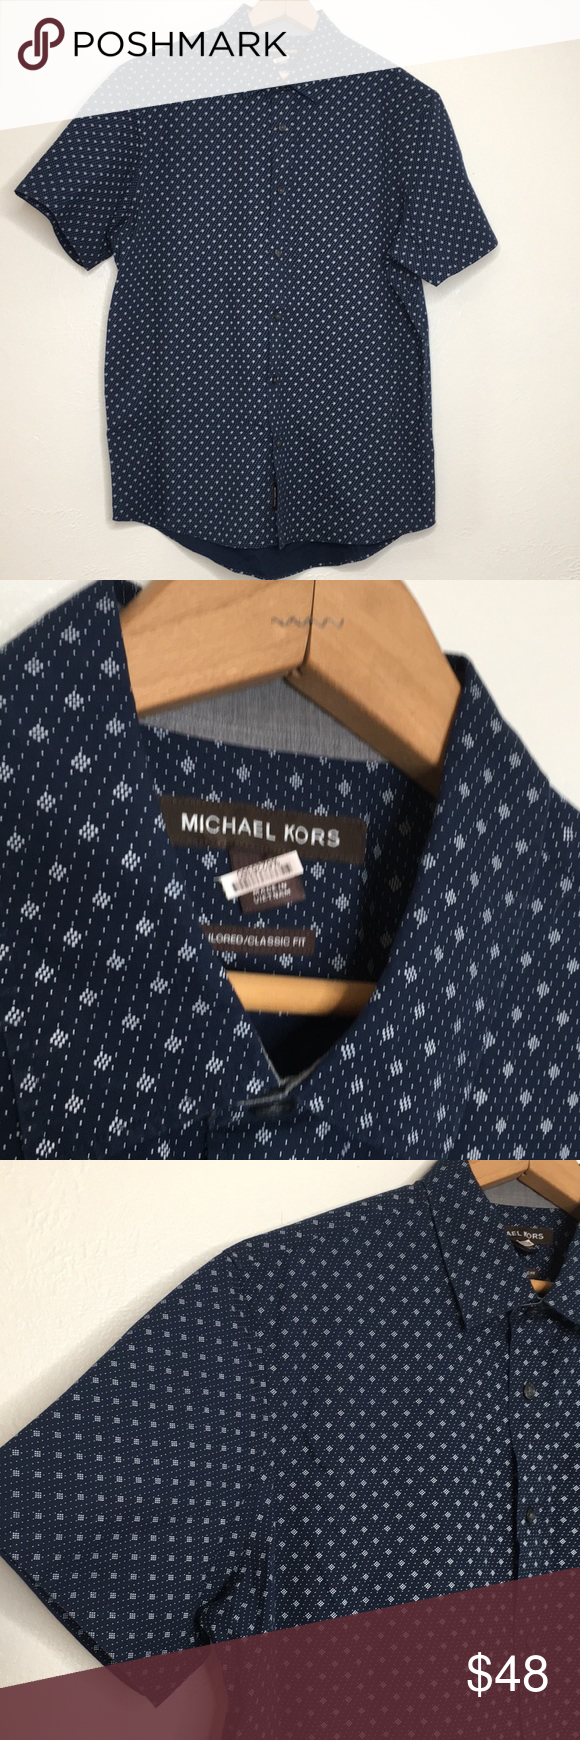 9ae5ccc5 Michael Kors classic fit short sleeve shirt L NWOT Tailored classic fit Short  sleeve button down